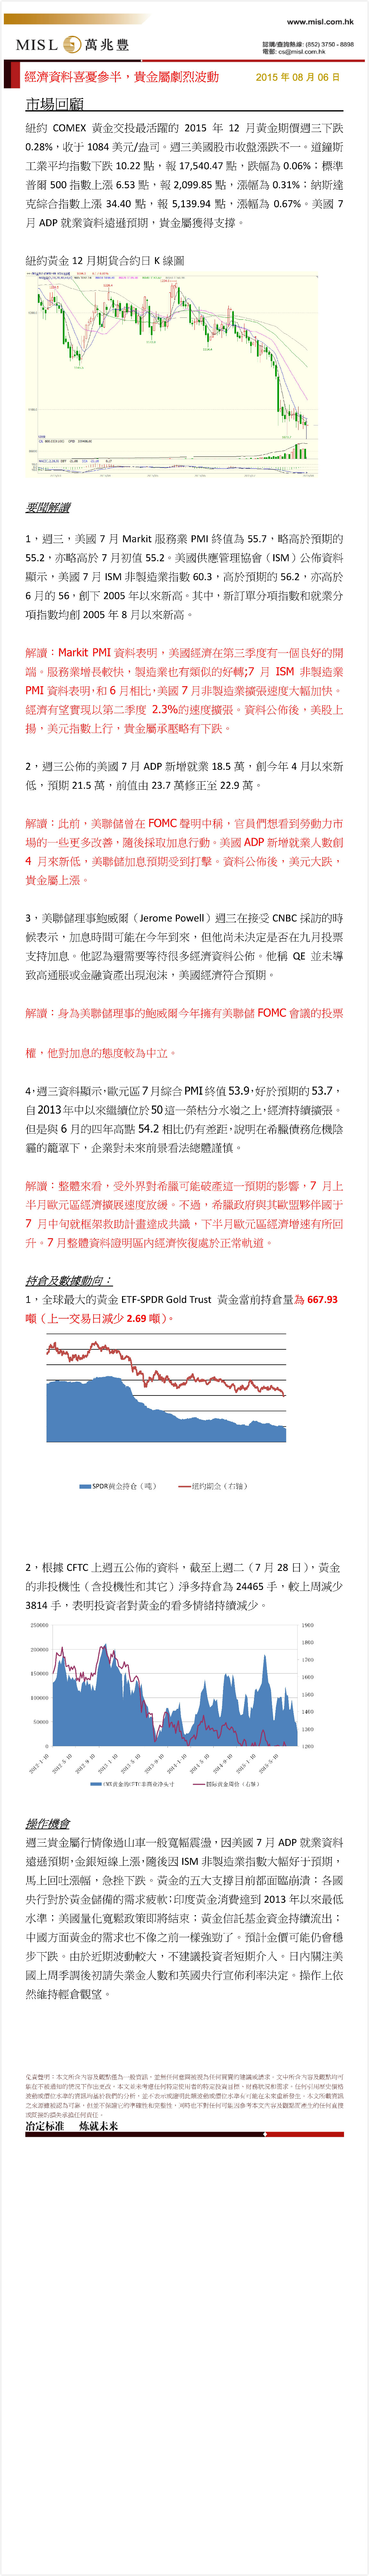 Gold  Futures Review 20150806